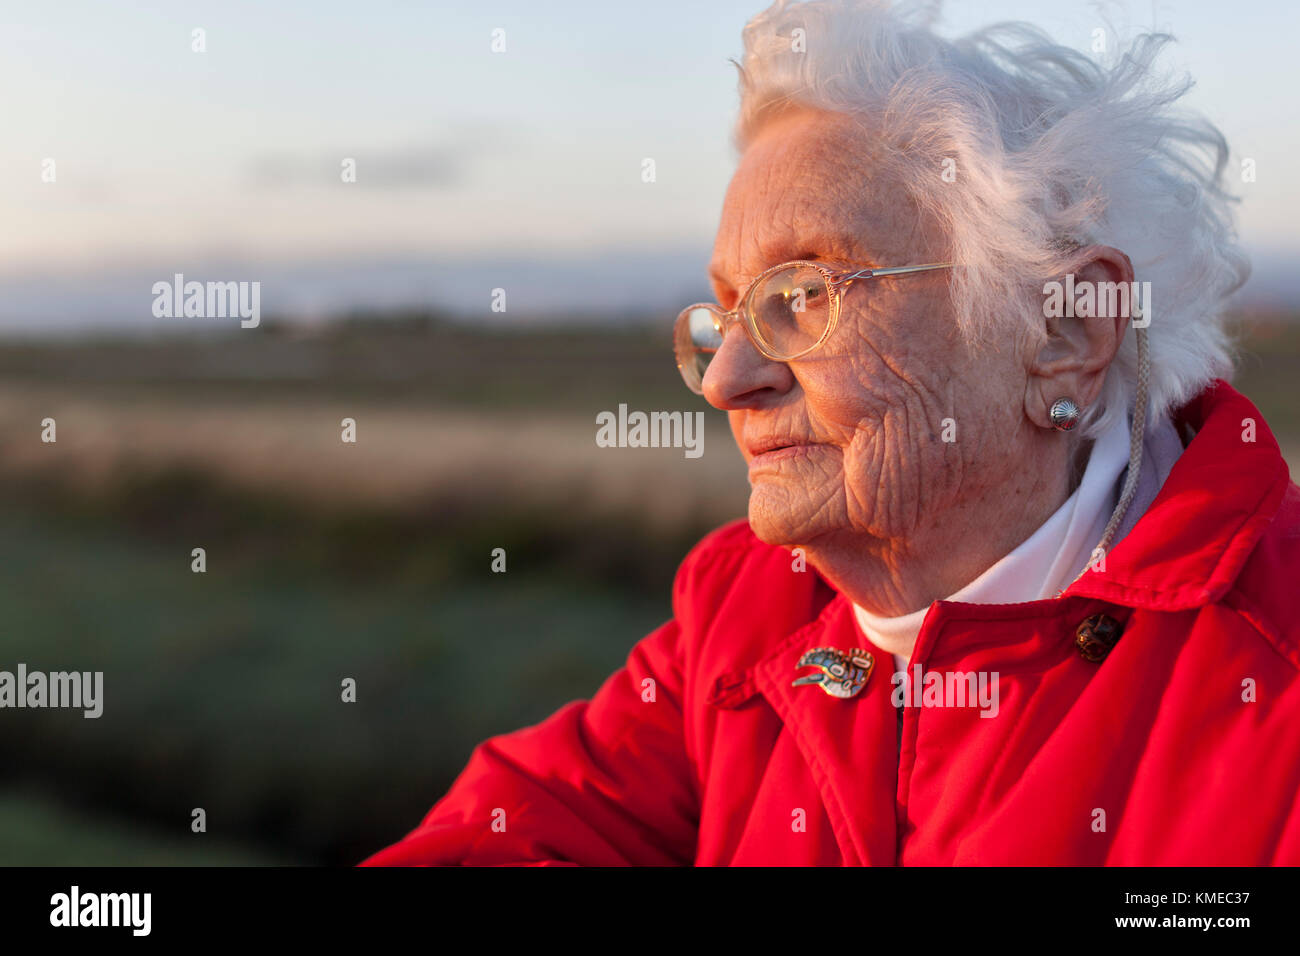 Champion of tidal marshes in Bay Area, Florence lariviere in the lariviere Marsh in Freemont, California, USA - Stock Image